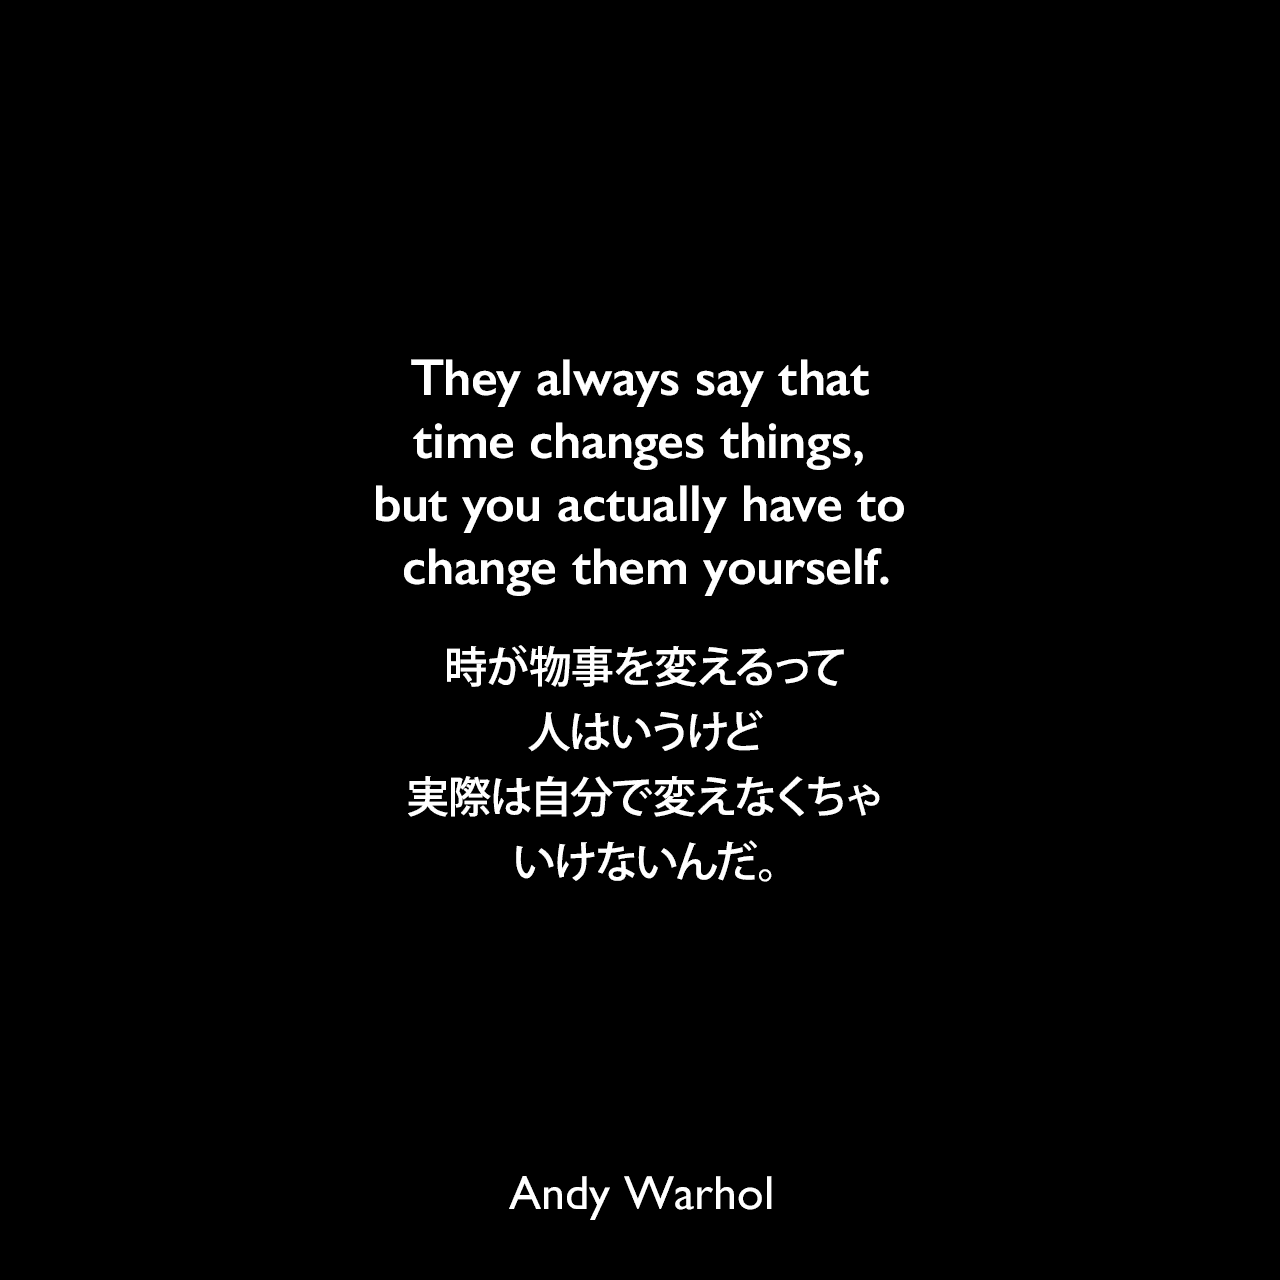 They always say that time changes things, but you actually have to change them yourself.時が物事を変えるって人はいうけど、実際は自分で変えなくちゃいけないんだ。Andy Warhol